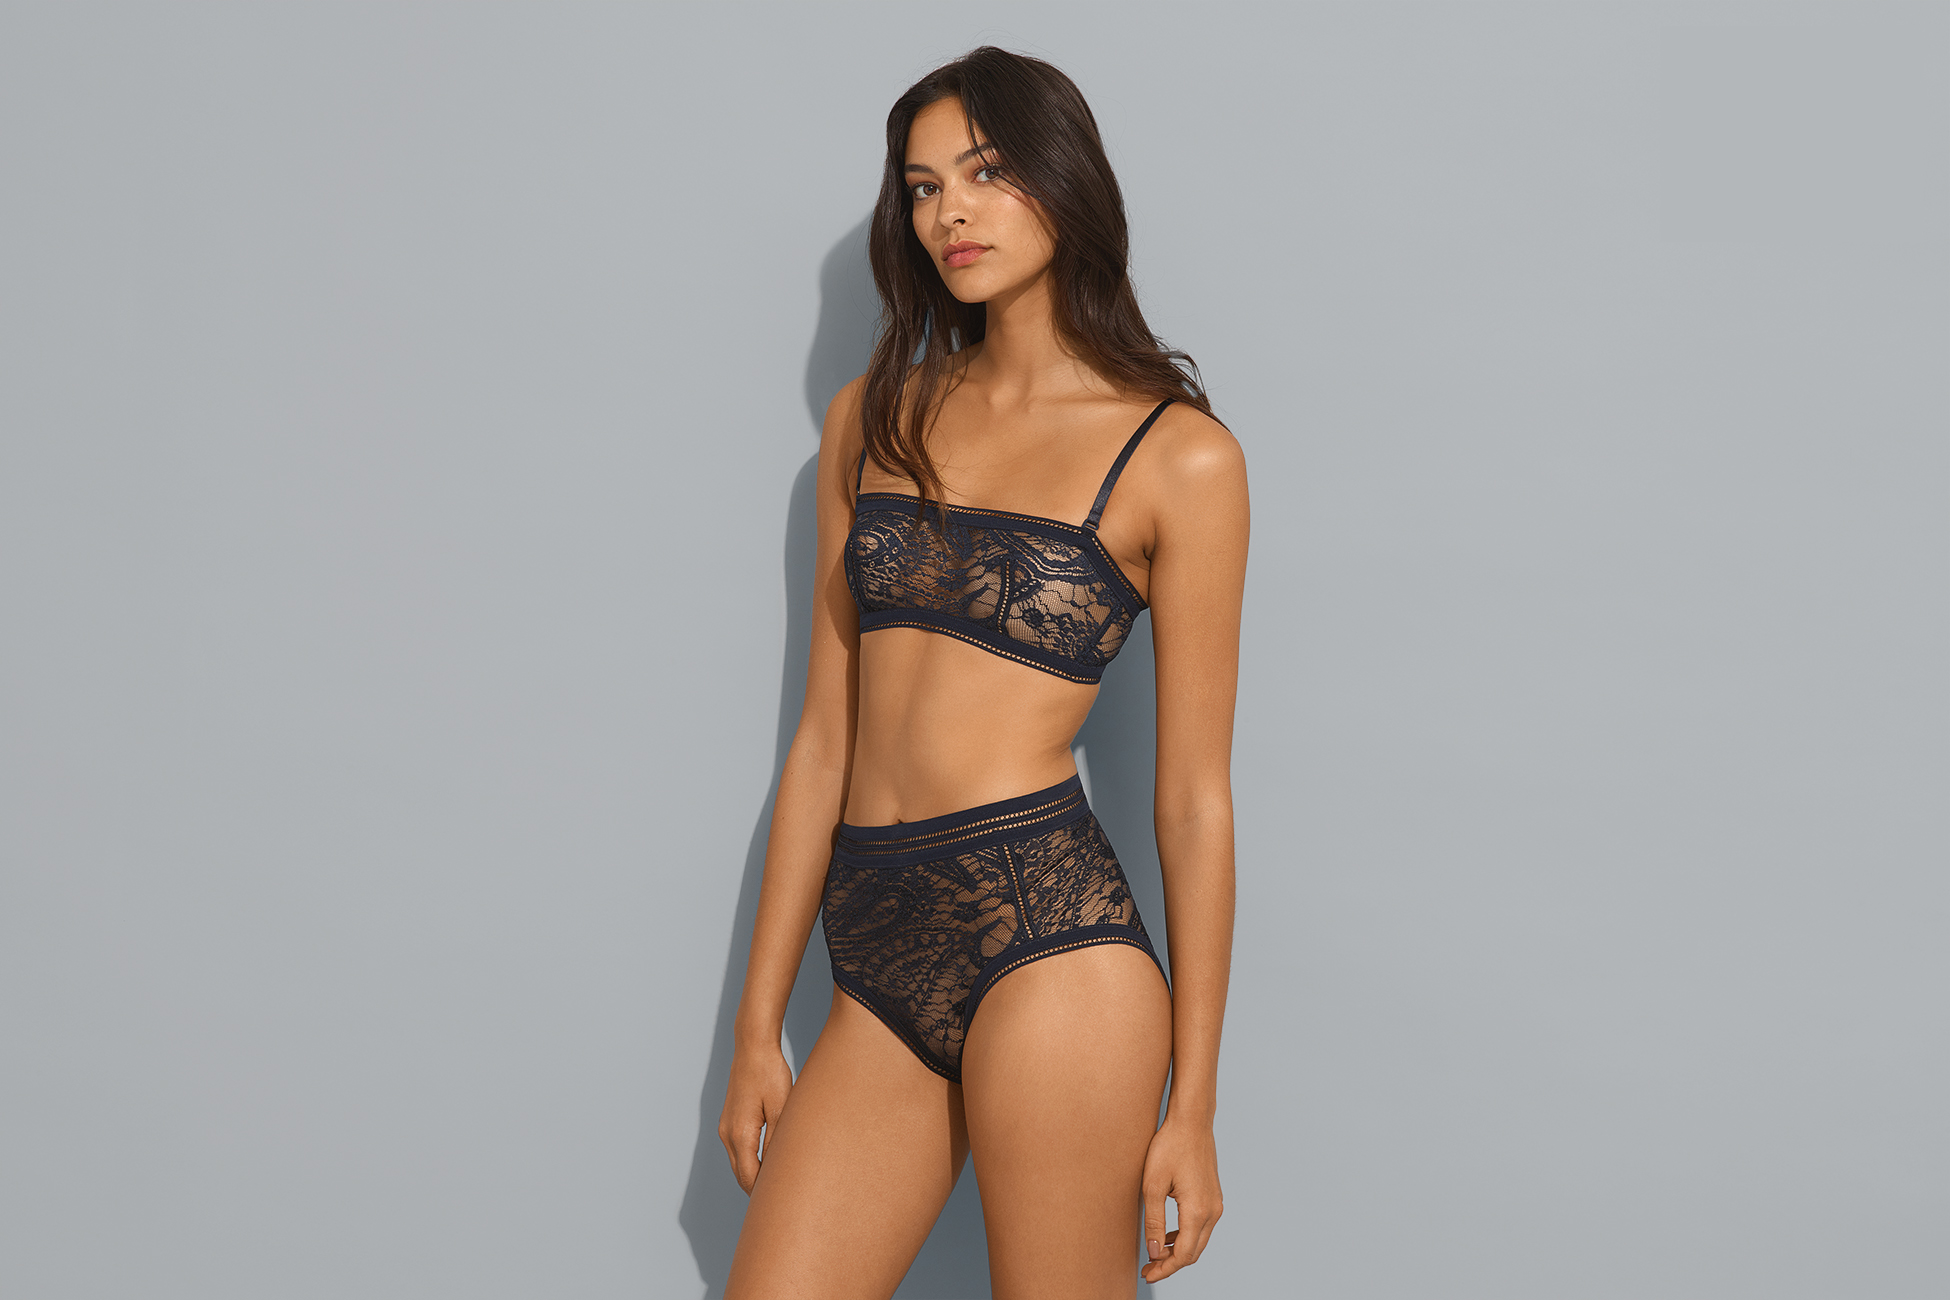 Mousson Crop top bra standard view 2